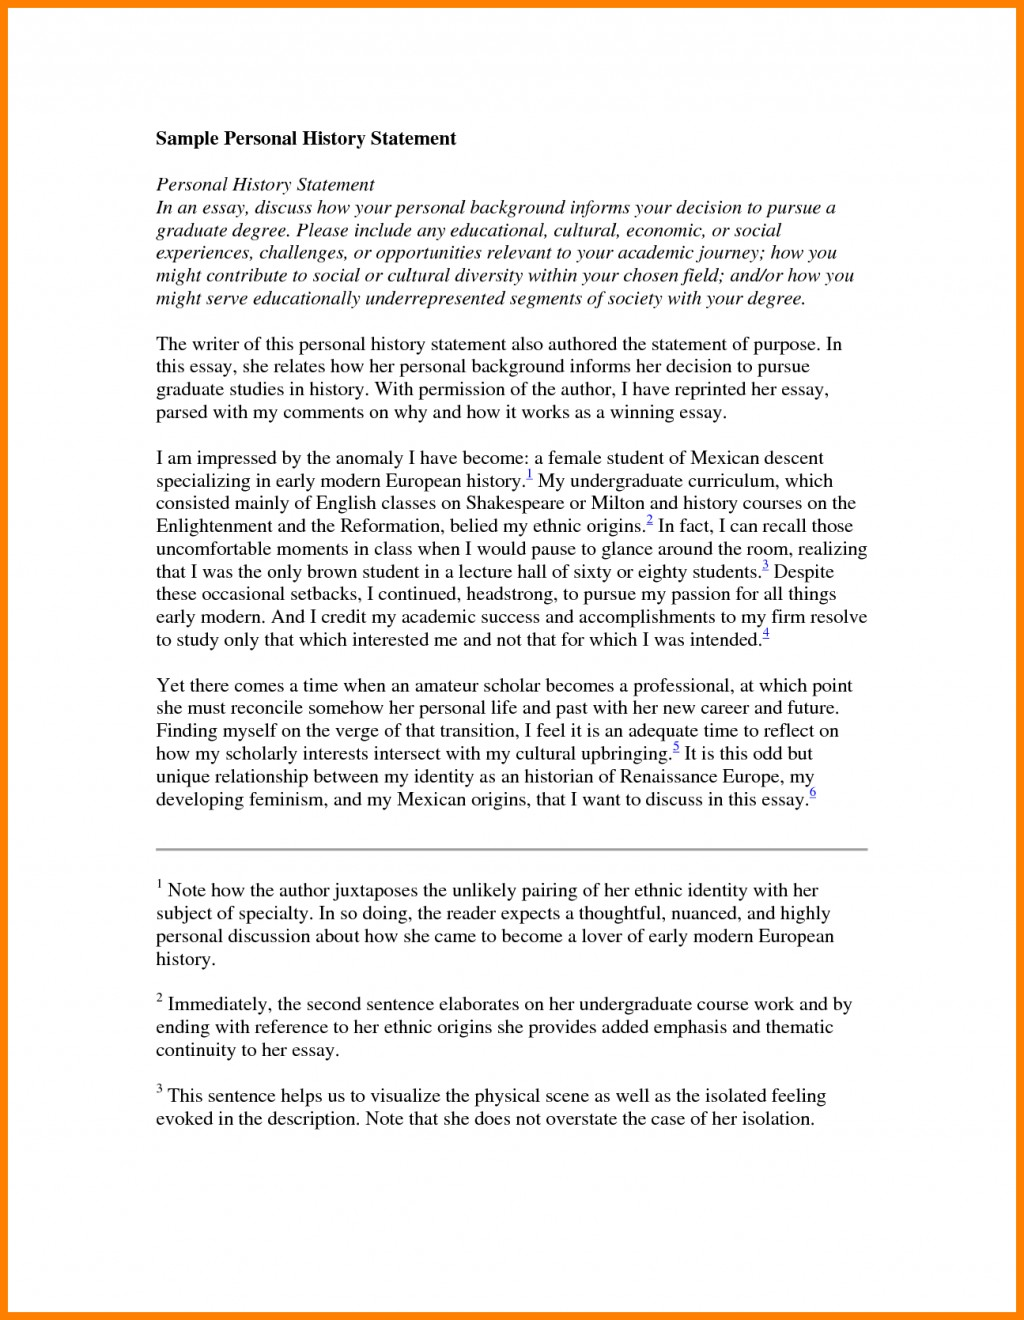 014 Essay Example Social Work Personal Statements Wollid Why I Want To Outstanding Be A Worker Study Do Become Became Large